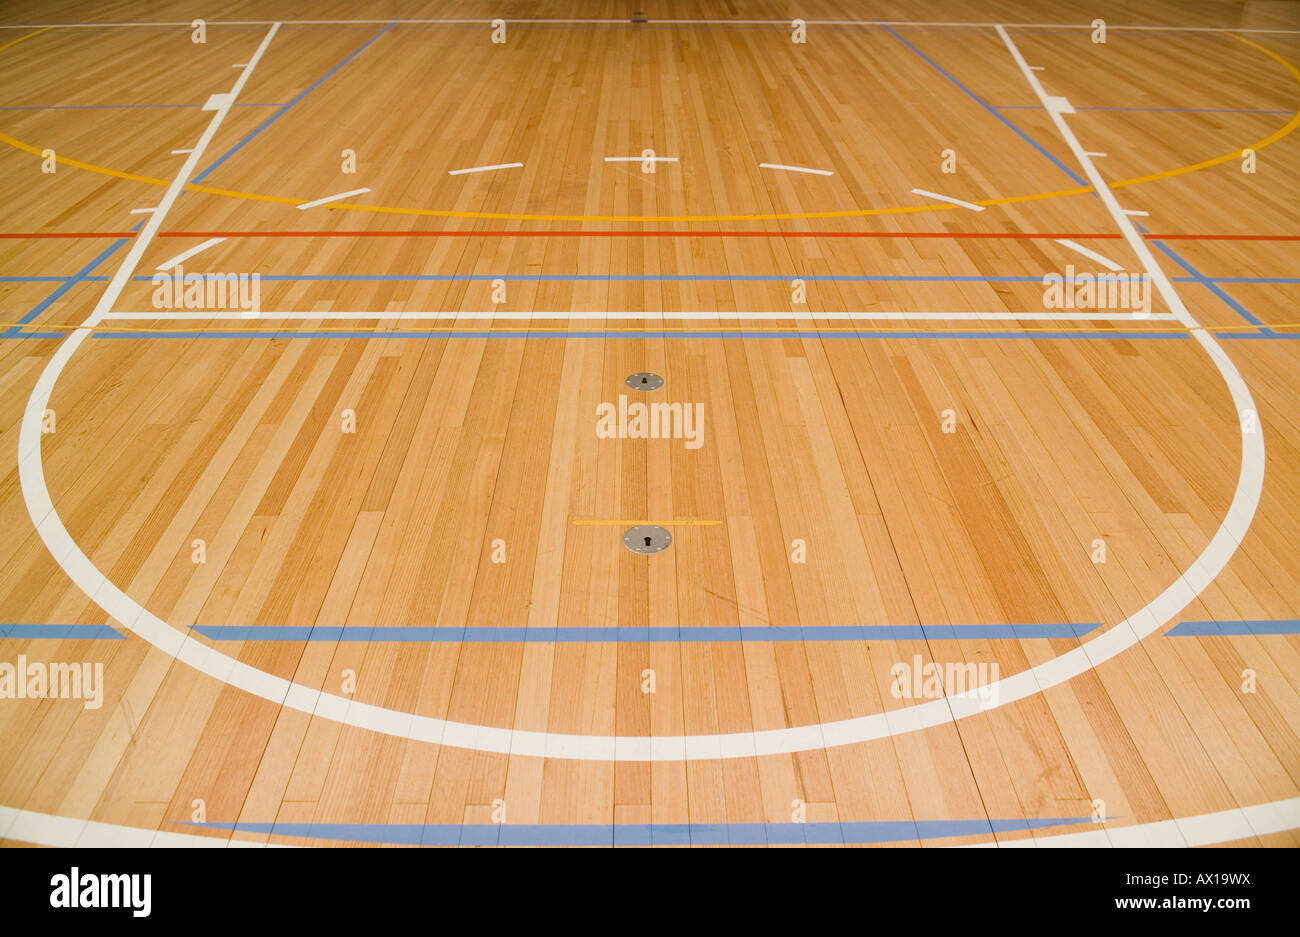 Close up of an empty indoor basketball court Stock Photo, Royalty ...